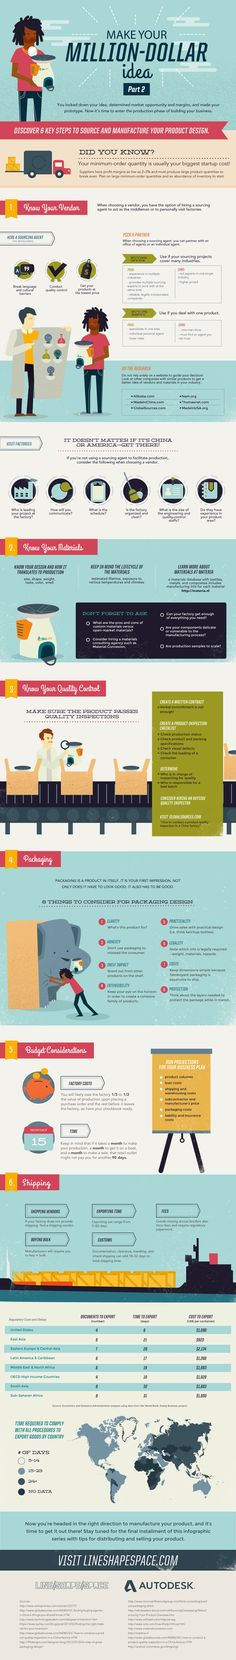 For my aspiring Entrepreneurs...  Make Your Million-Dollar Idea: Product Design Manufacturing Process | Infographic